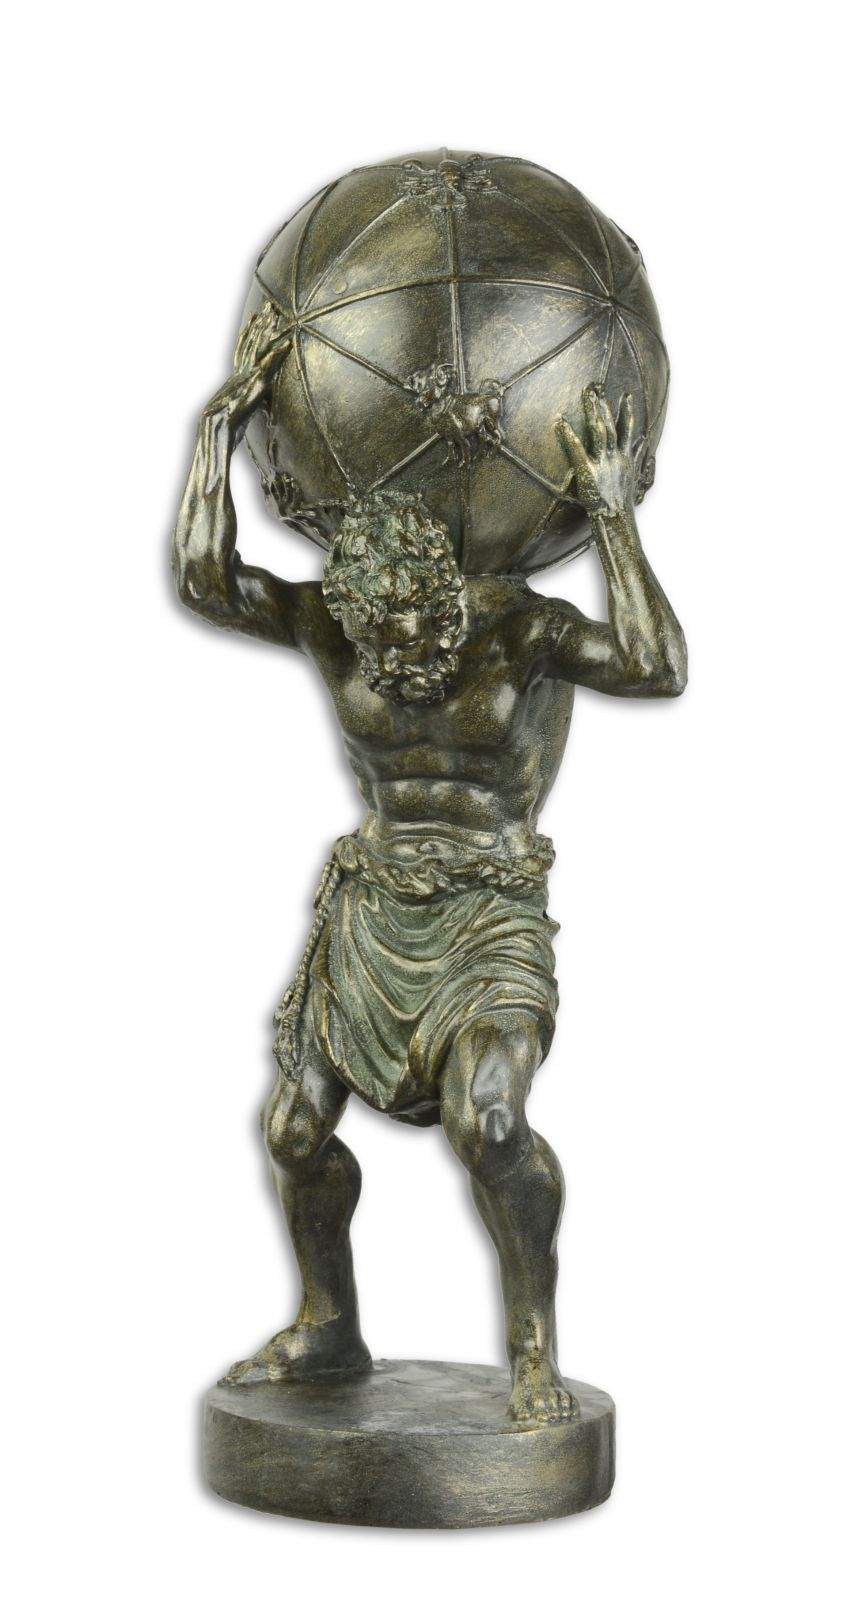 Statue of a atlas made of resin